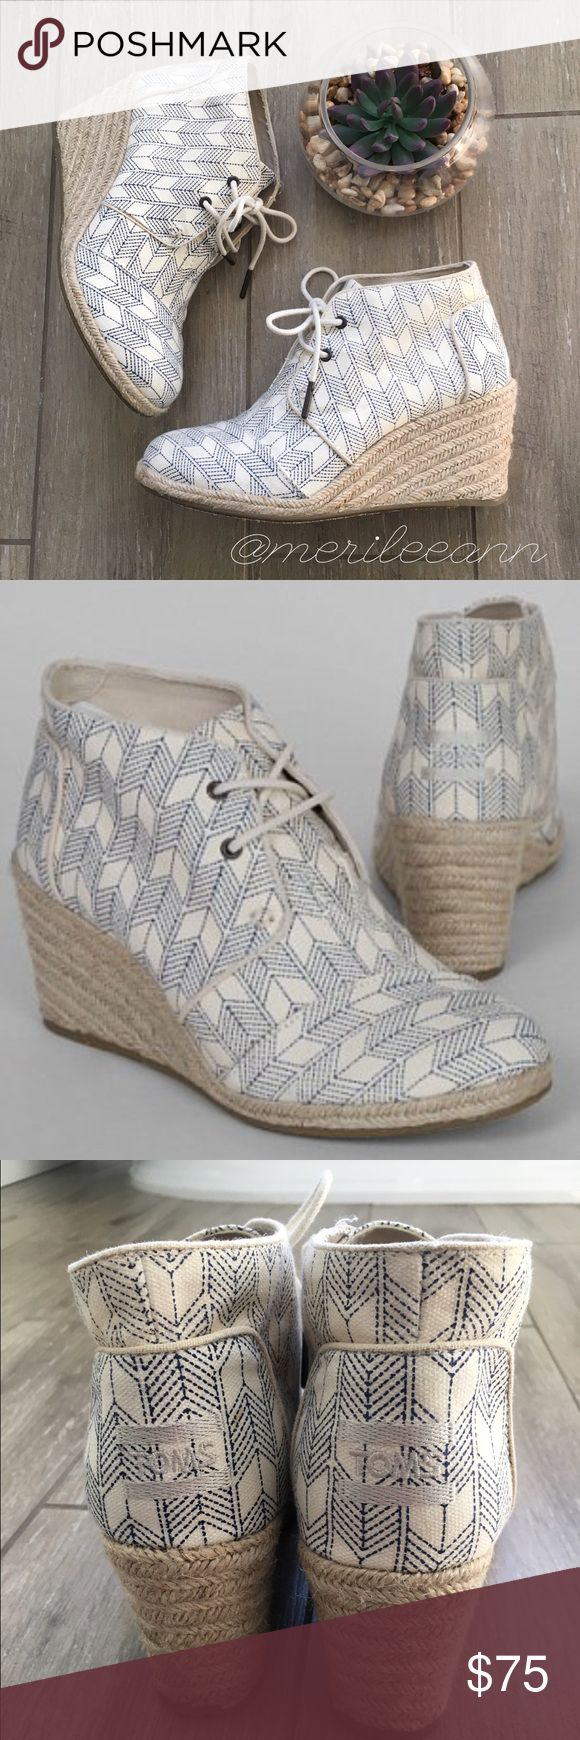 TOMS Desert Wedge Burlap Lace Up Look chic this Spring in these comfortable wedges!!  These are in excellent condition, as shown. Worn twice. No original box, but I wrap and ship carefully. Don't miss these! TOMS Shoes Ankle Boots & Booties